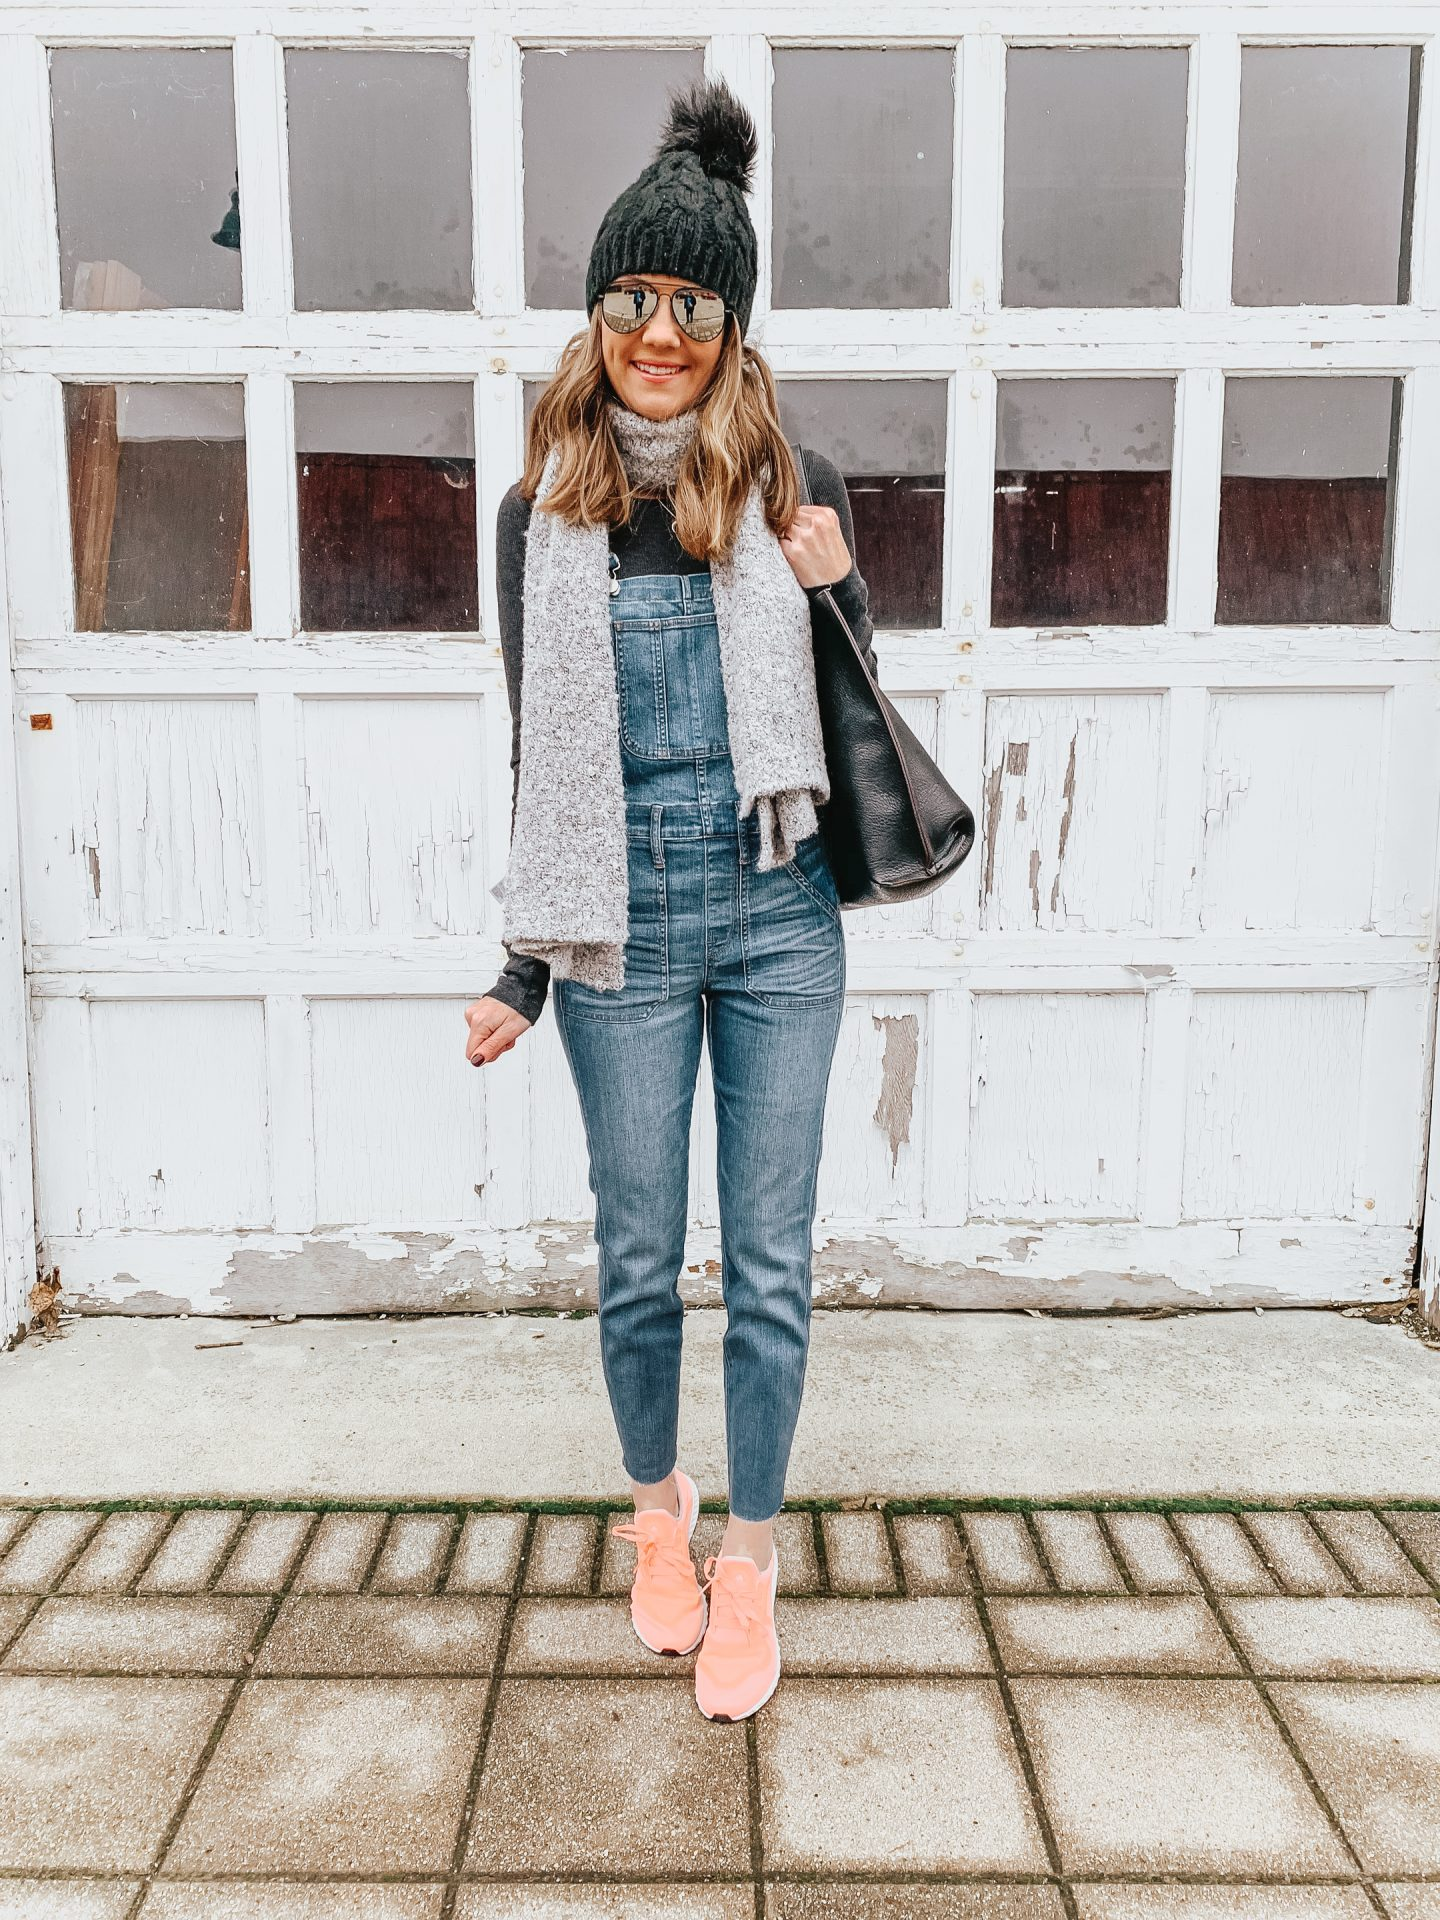 how to style overalls in the winter, Madewell skinny overalls, black plaid scarf, pink Adidas sneakers, overalls over age 40